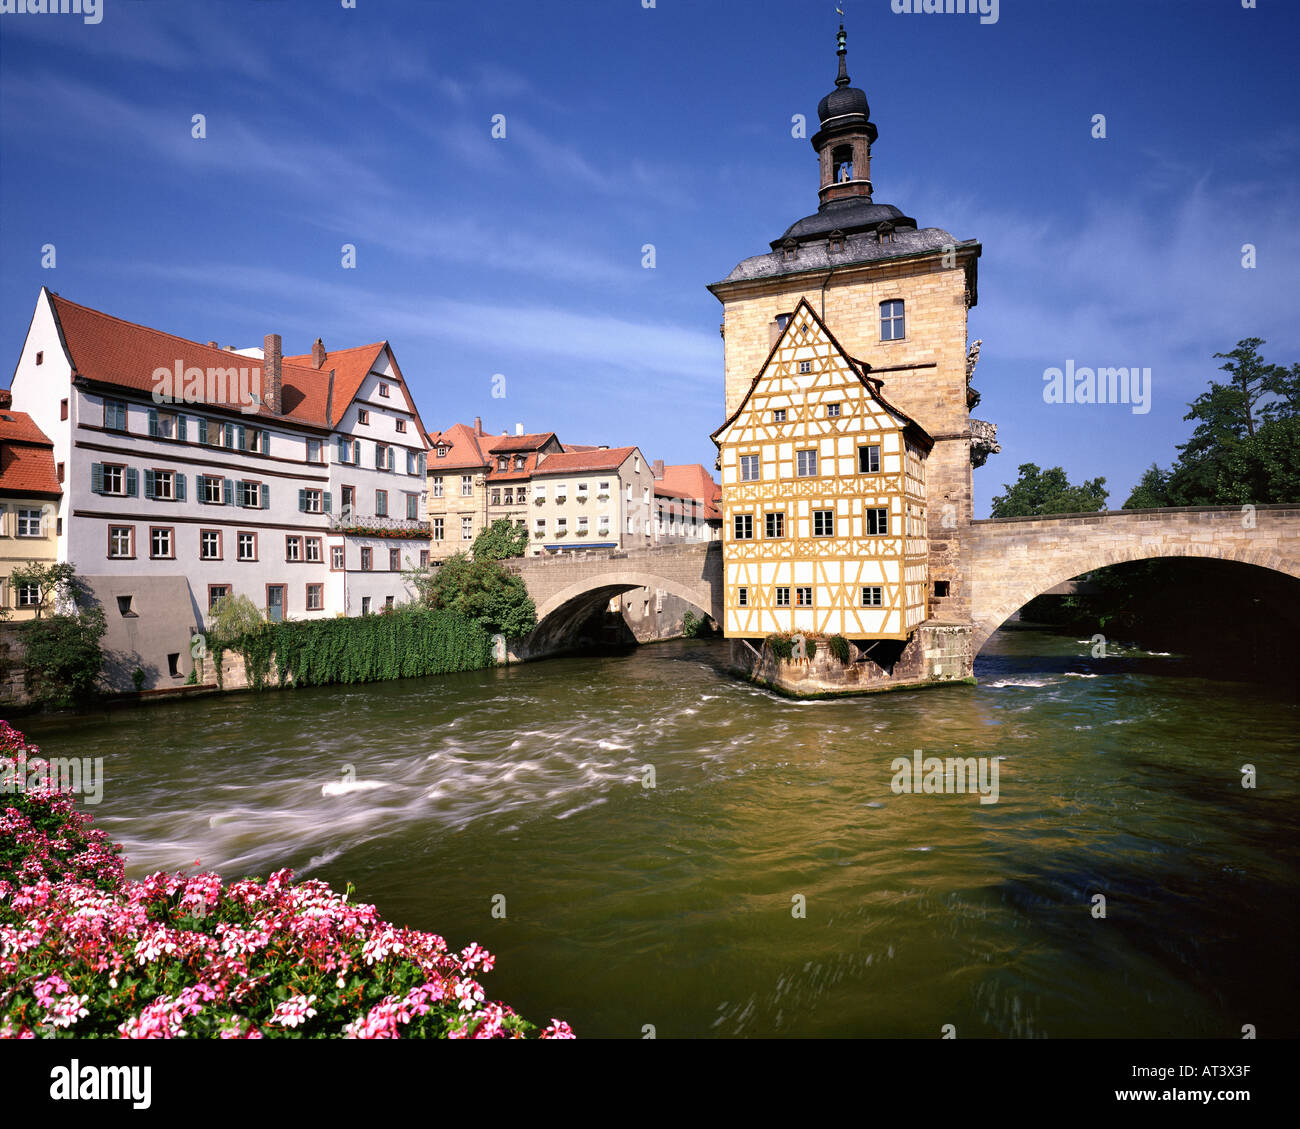 DE - BAVARIA:  The 'Altes Rathaus' (Old Cityhall) and River Regnitz at Bamberg (Upper Franconia) - Stock Image